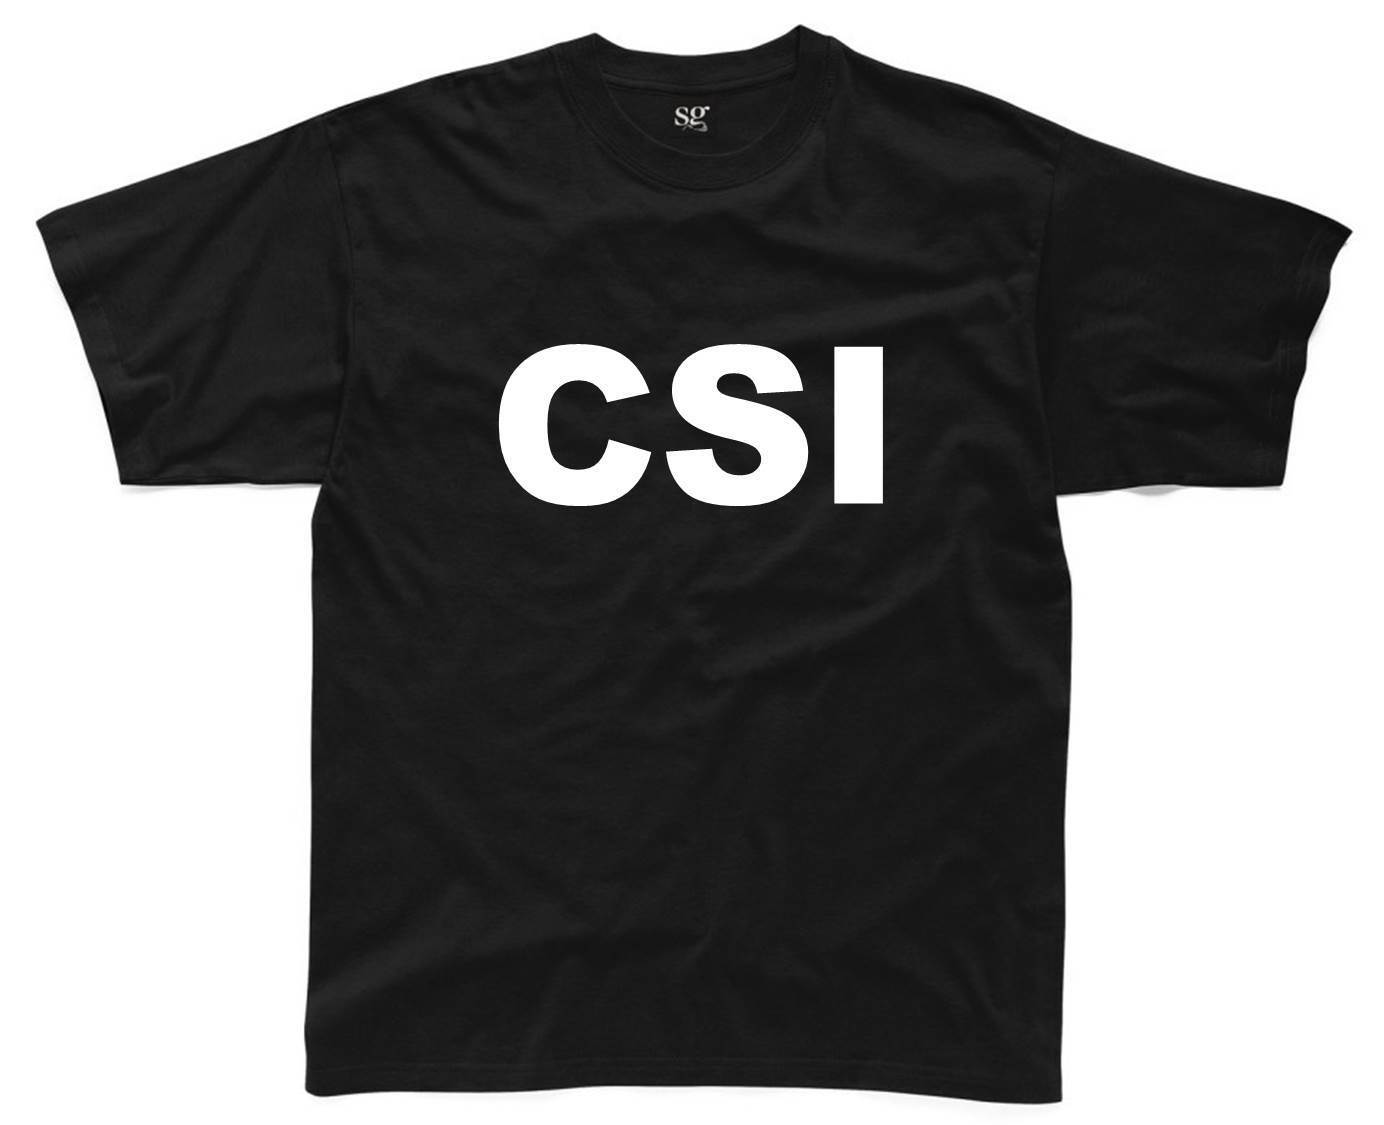 CSI Ladies T-Shirt 8-16 Black Funny Printed Fancy Dress Costume Joke Top Police